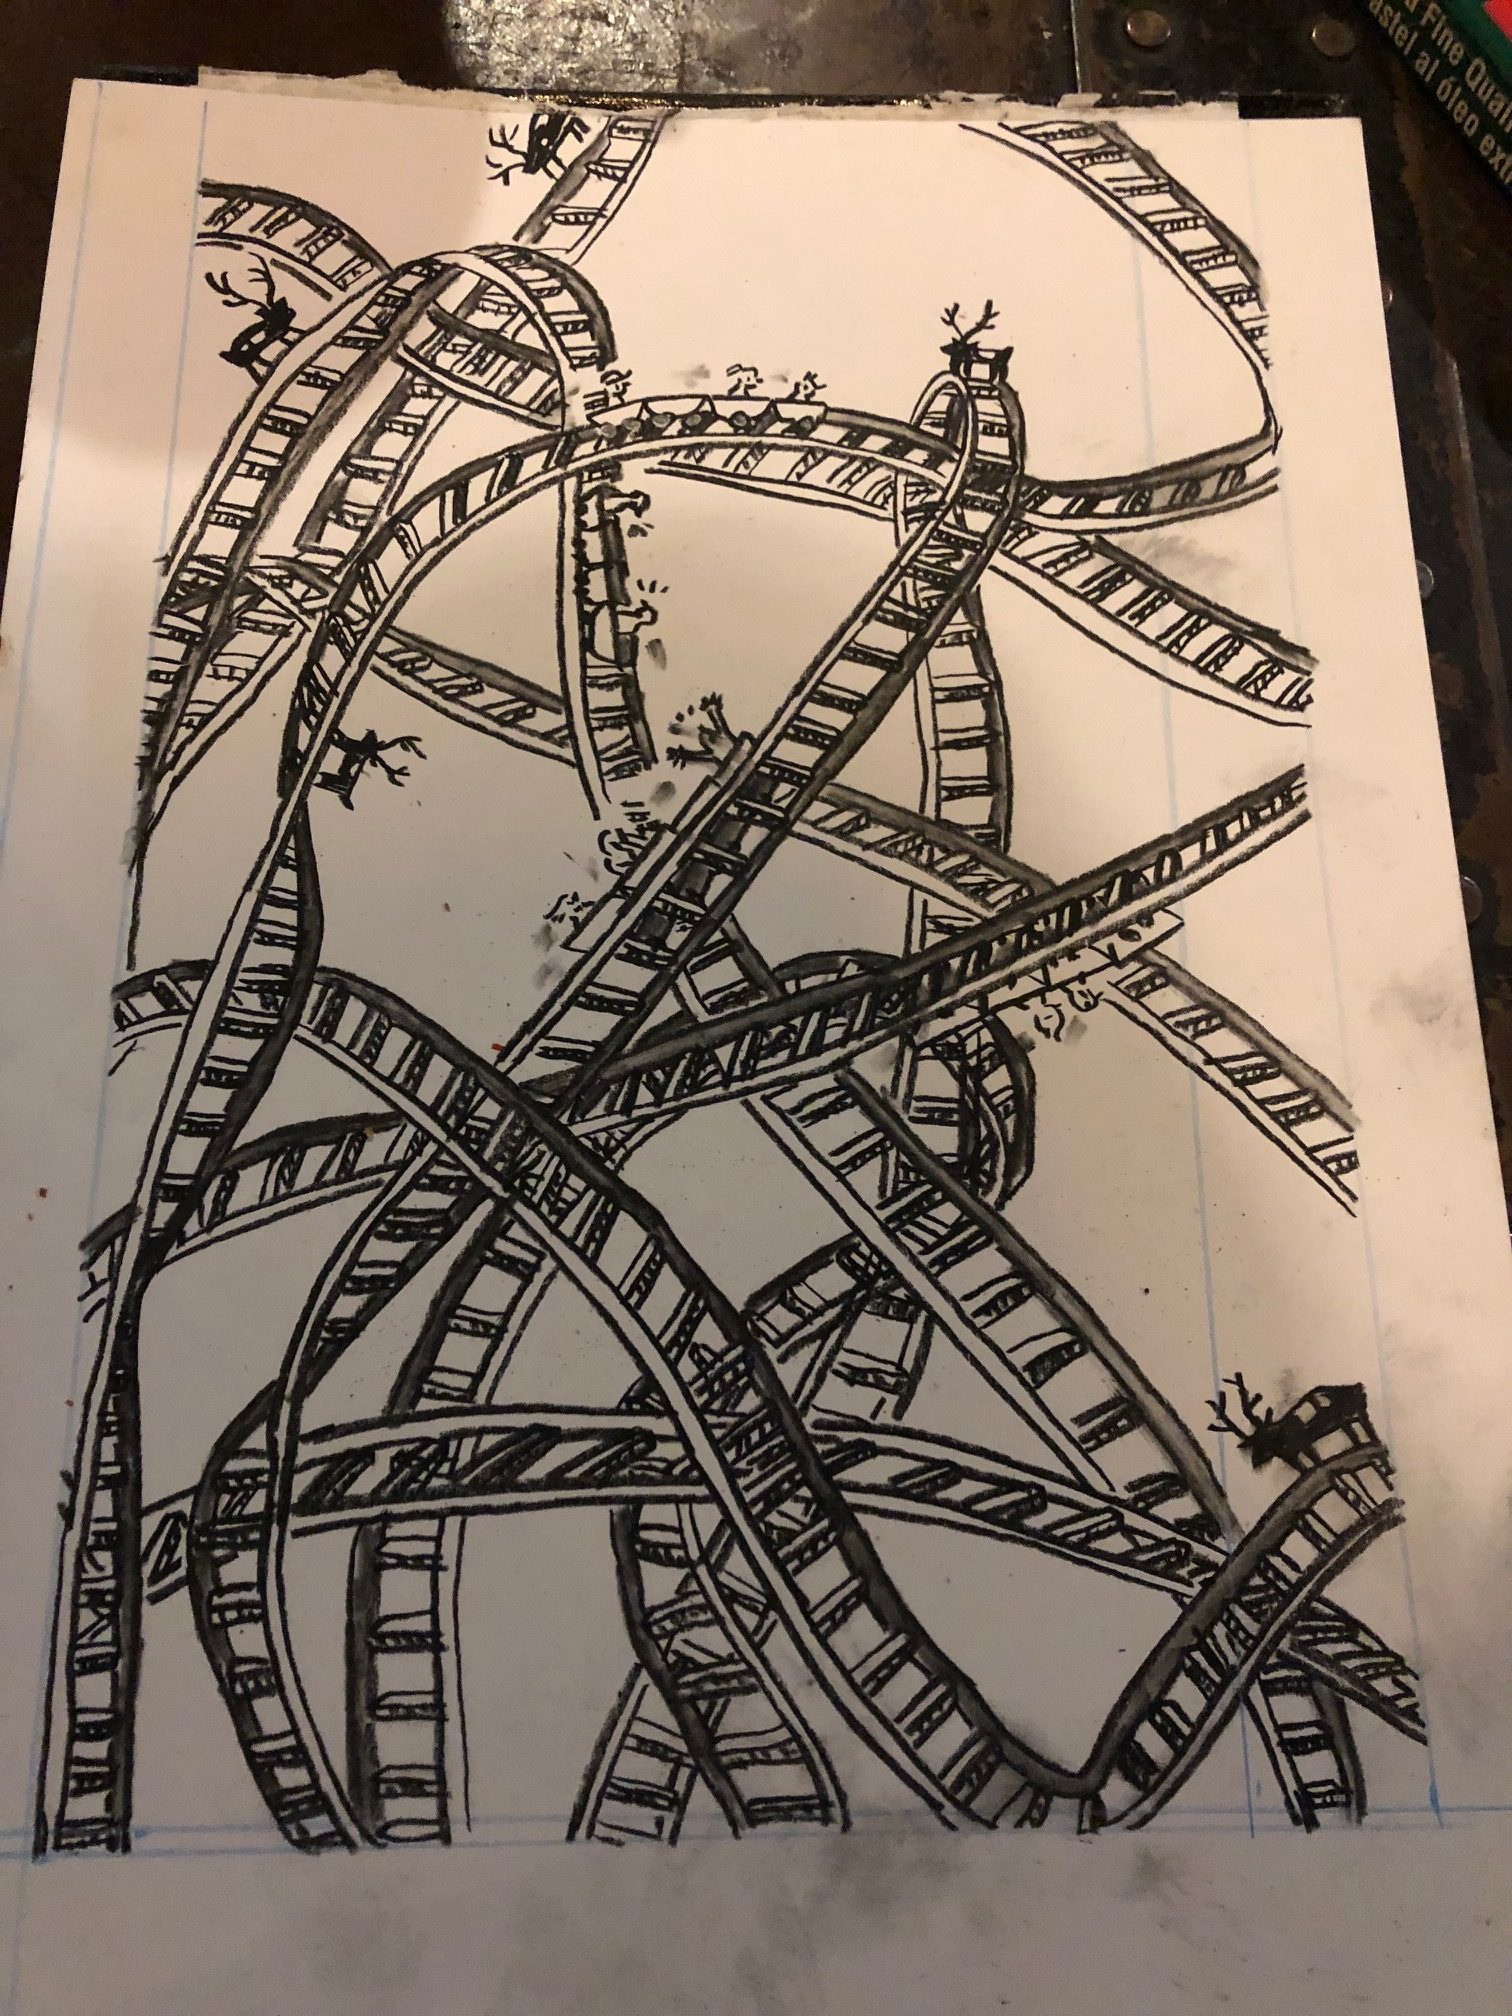 A drawing from the best dream I ever had about a dream roller coaster, done in charcoal.